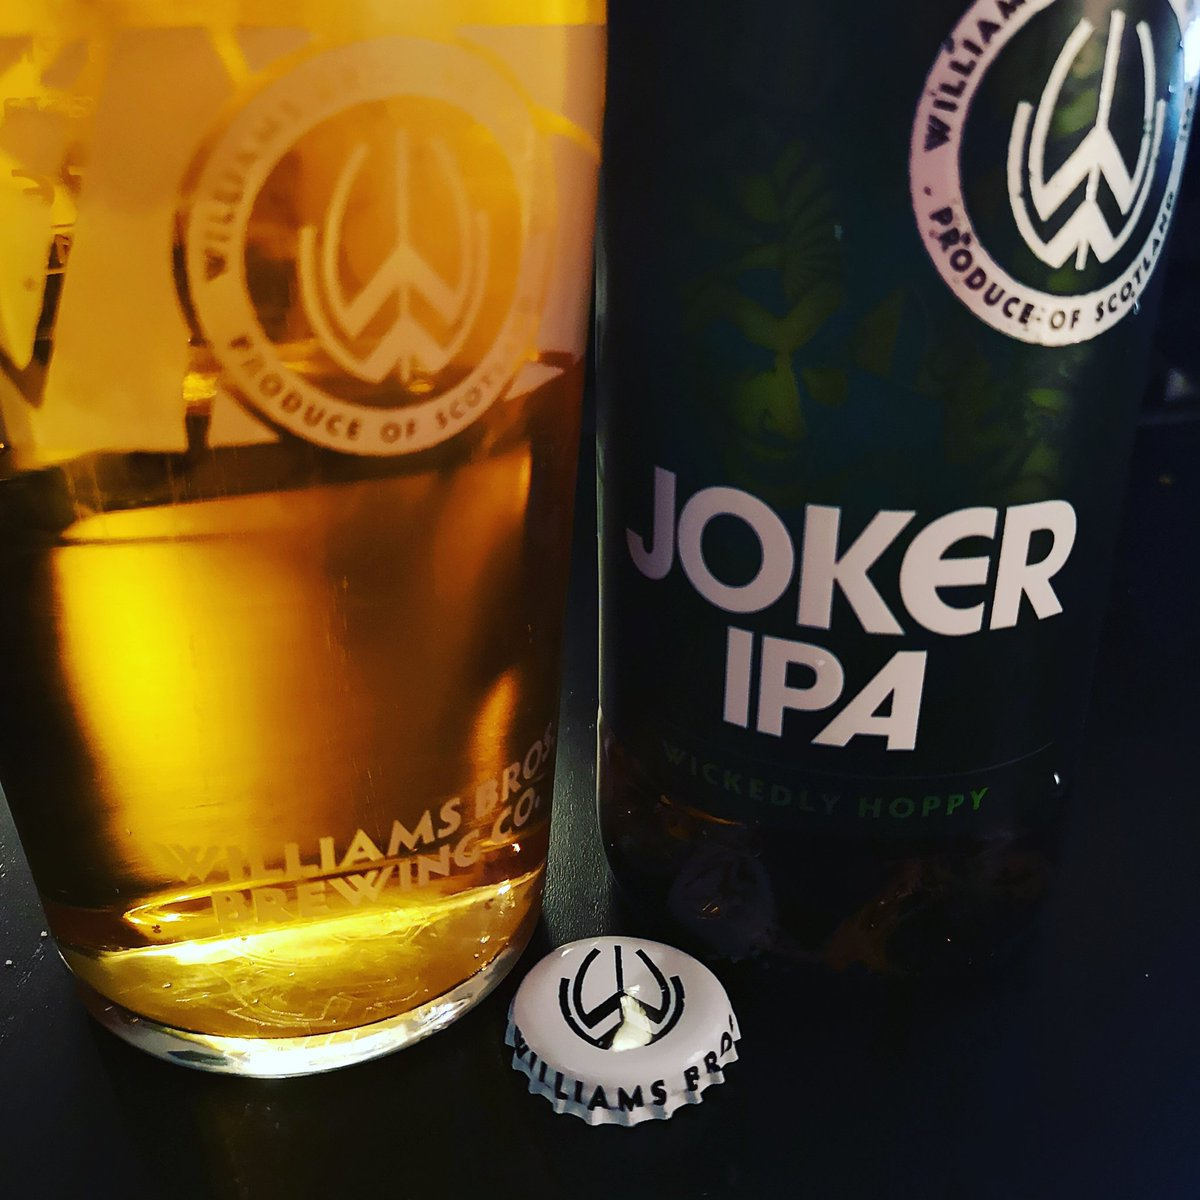 Saving the Scottish brewing industry one session at a time #JokerIPA by @Williamsbrewery is my go to beer these days, always great #williamsbrothersbrewing #scottishbeer #qualitynotquantity #beerlover #beertography pic.twitter.com/p8WwXh3TT4